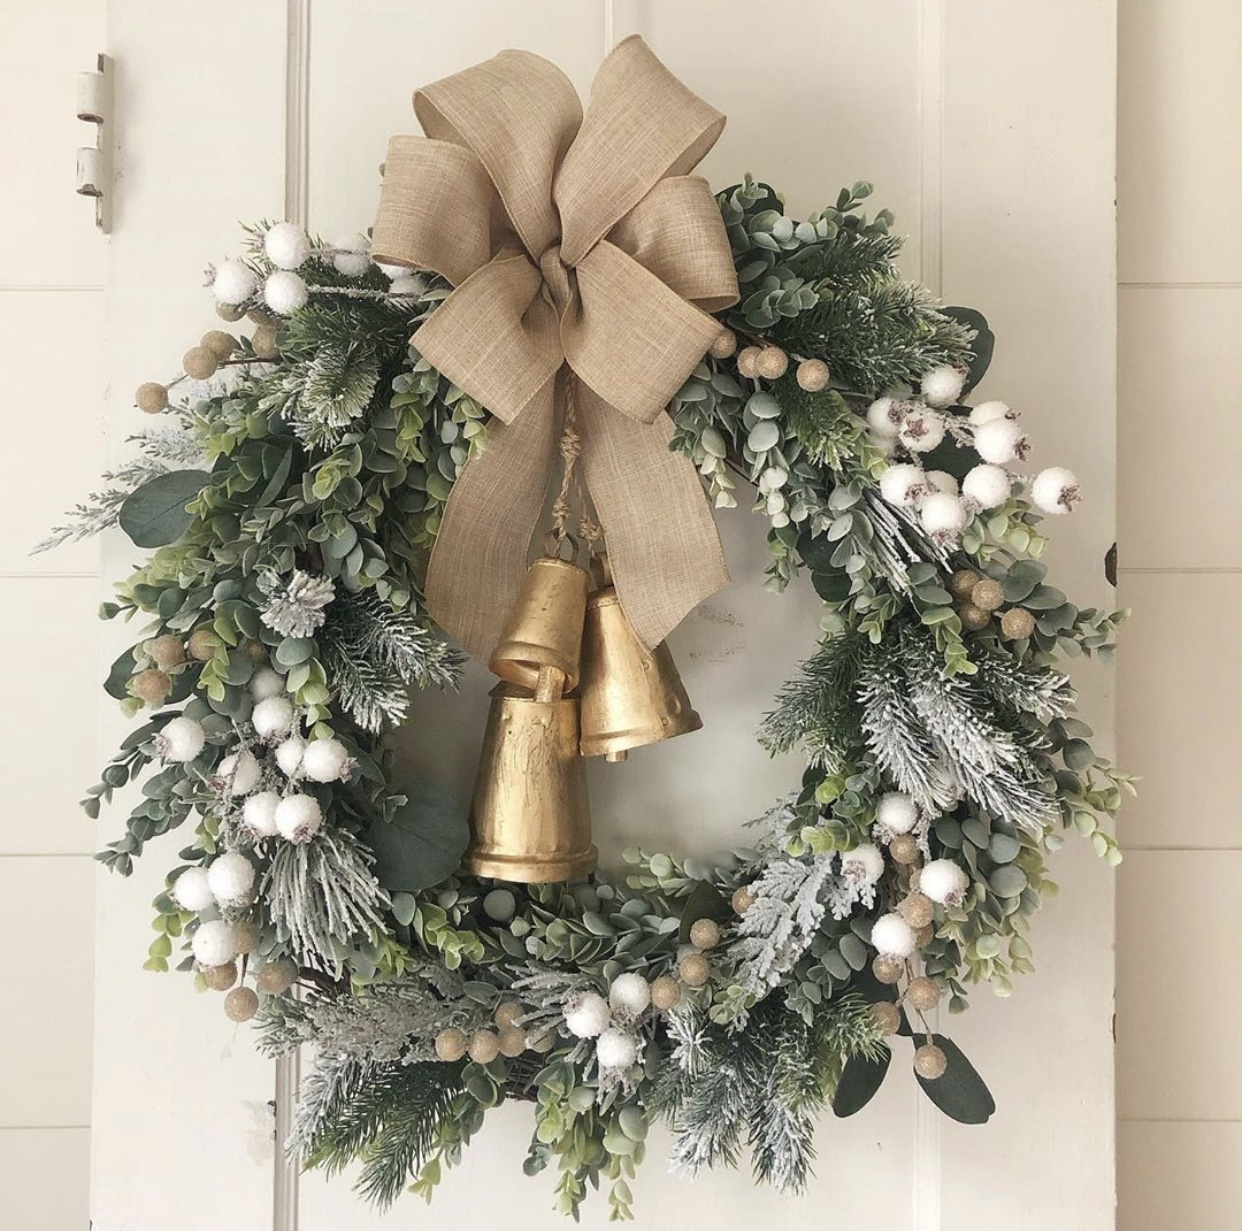 21 DIY Christmas Decoration Ideas That Will Make Your Home Look Splendid